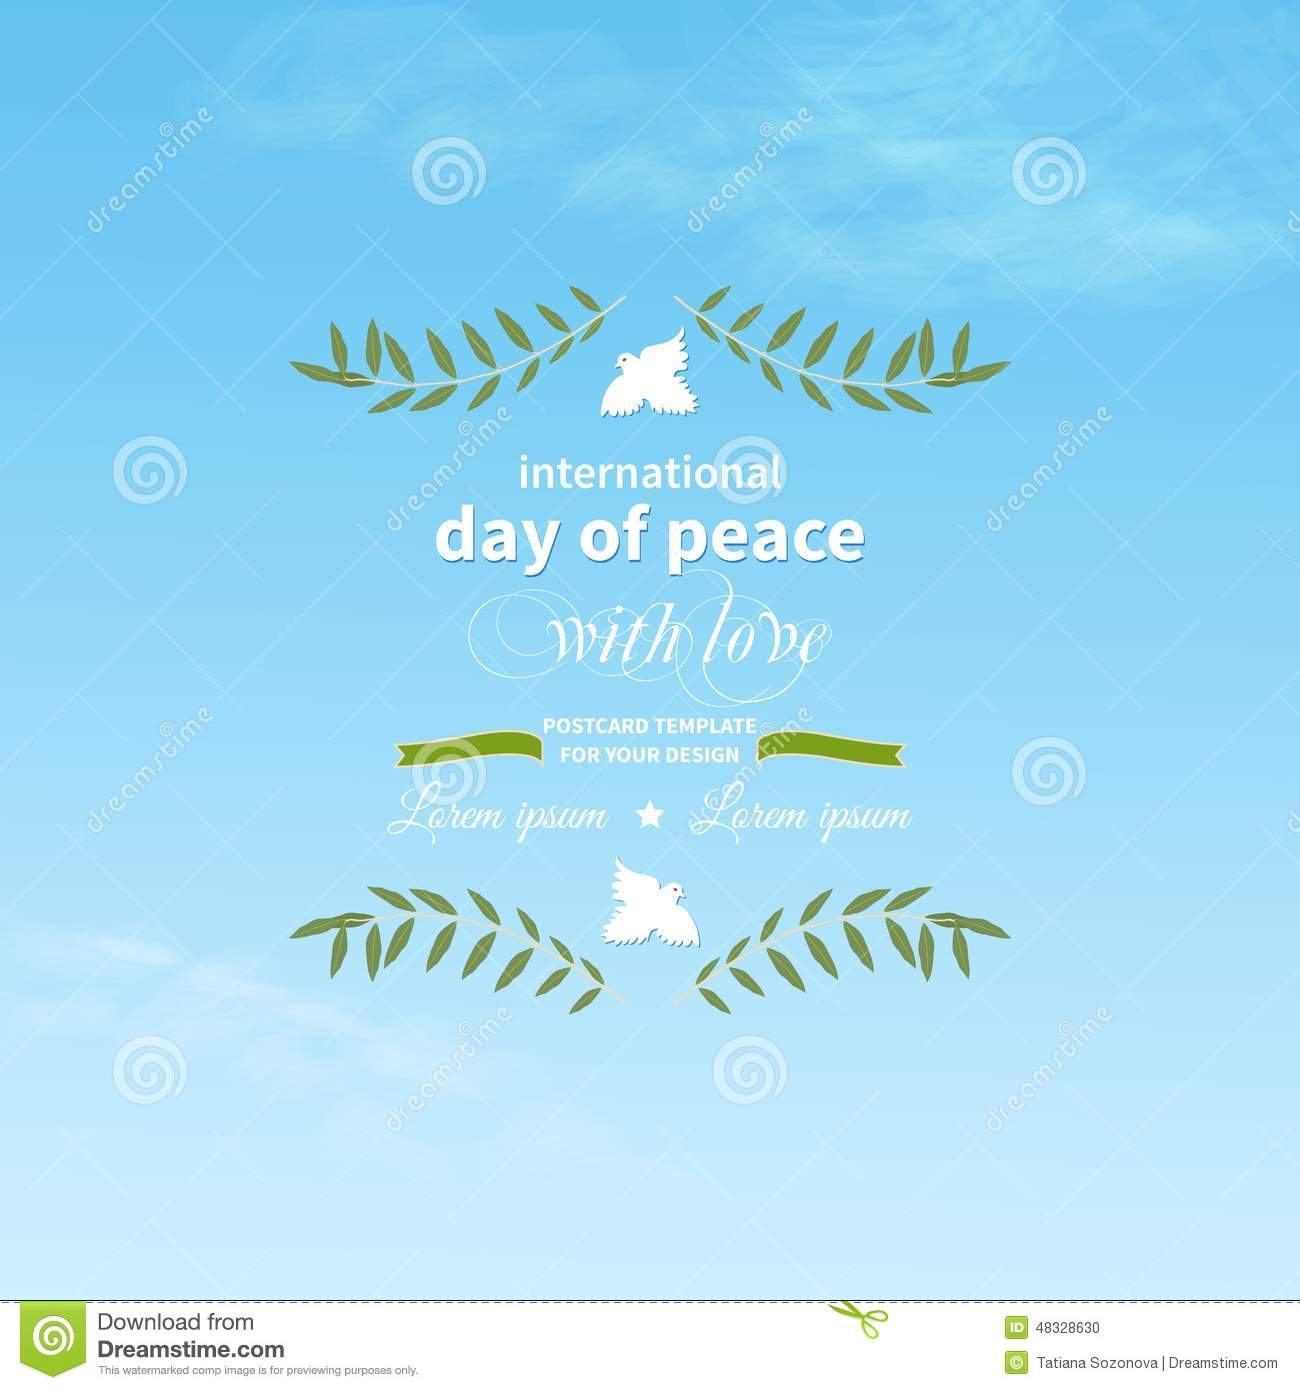 107-International Peace Day Wishes